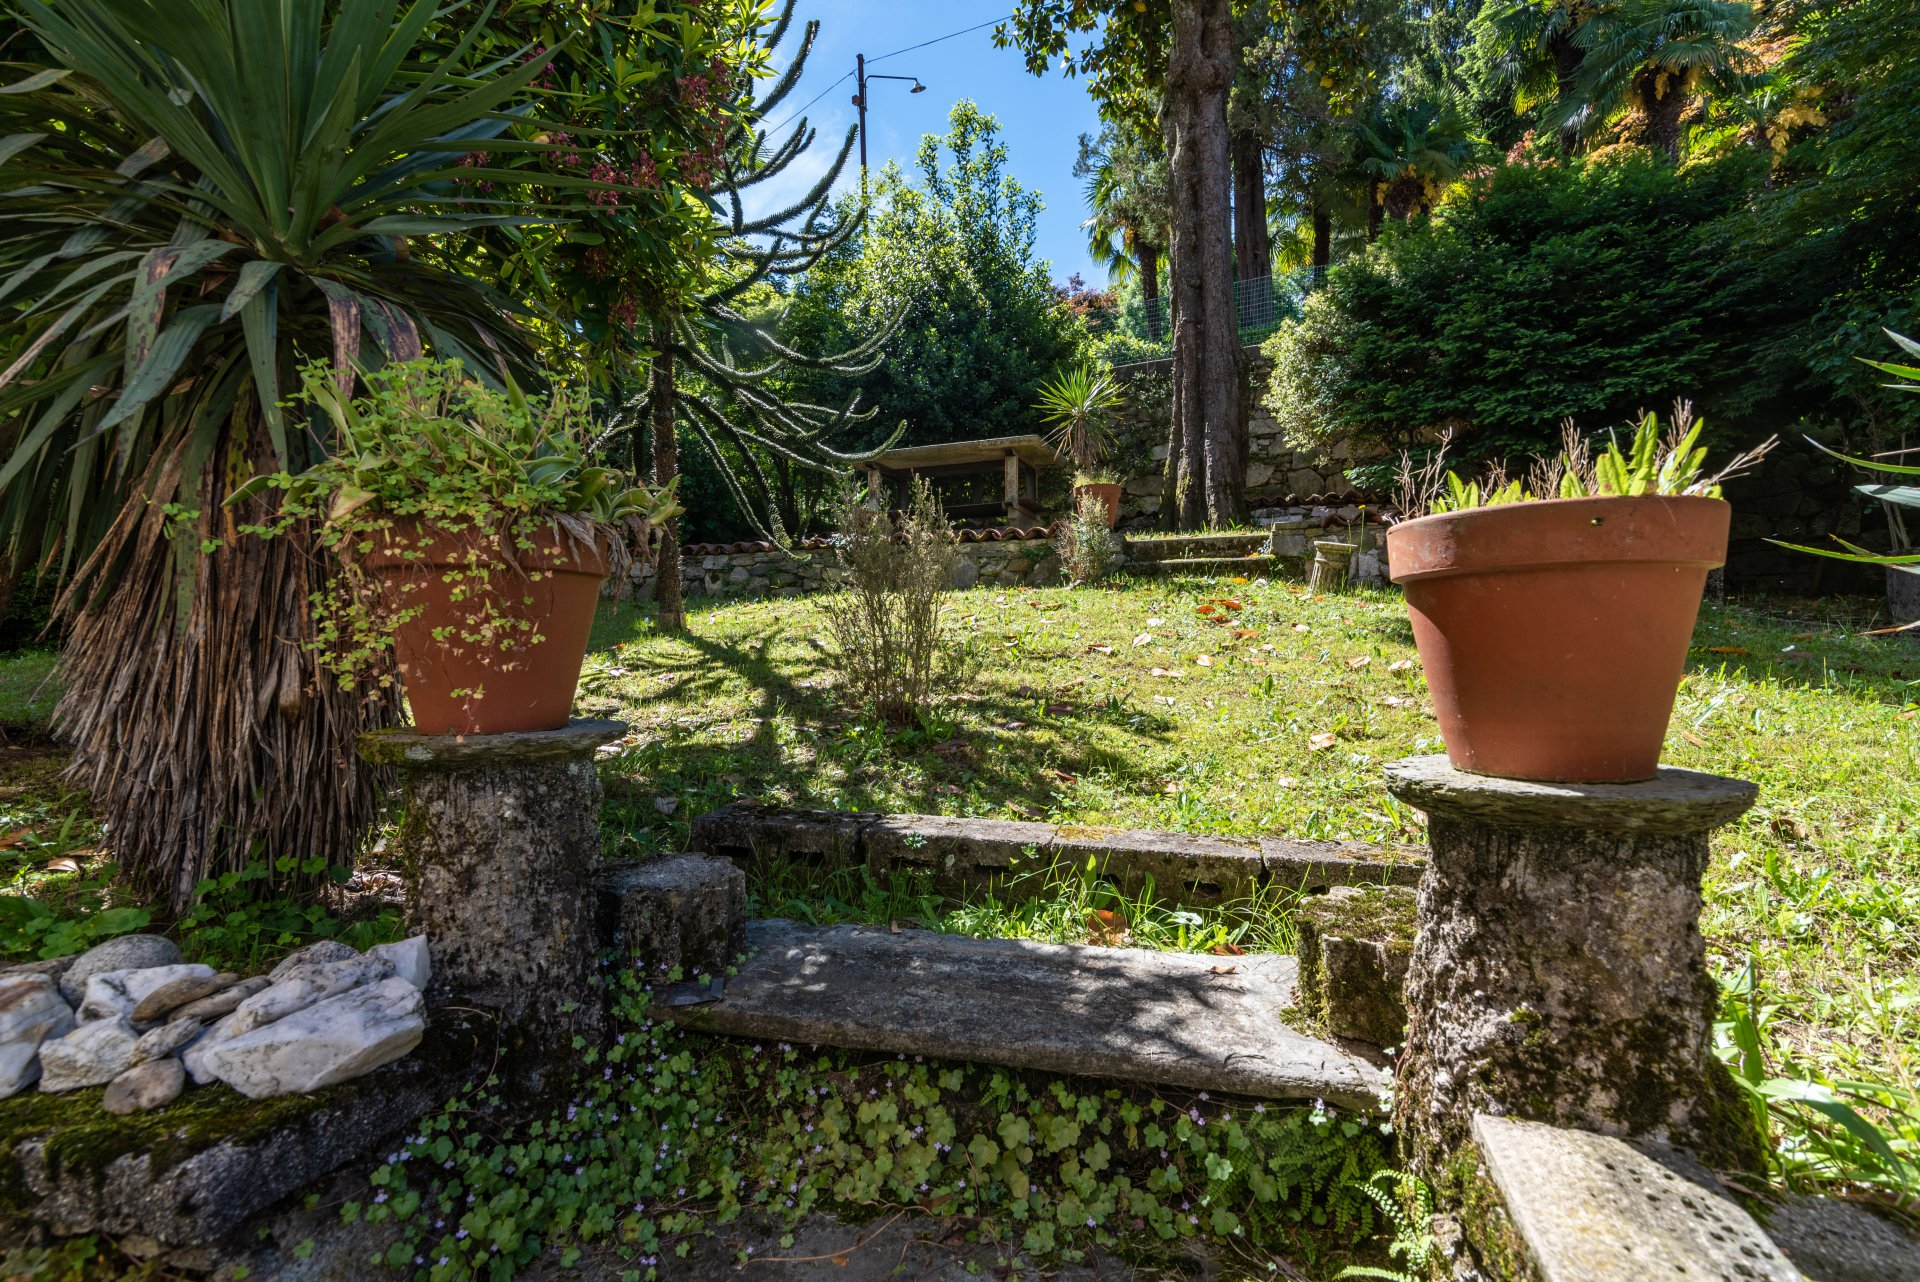 Property for sale in the centre of Stresa-garden